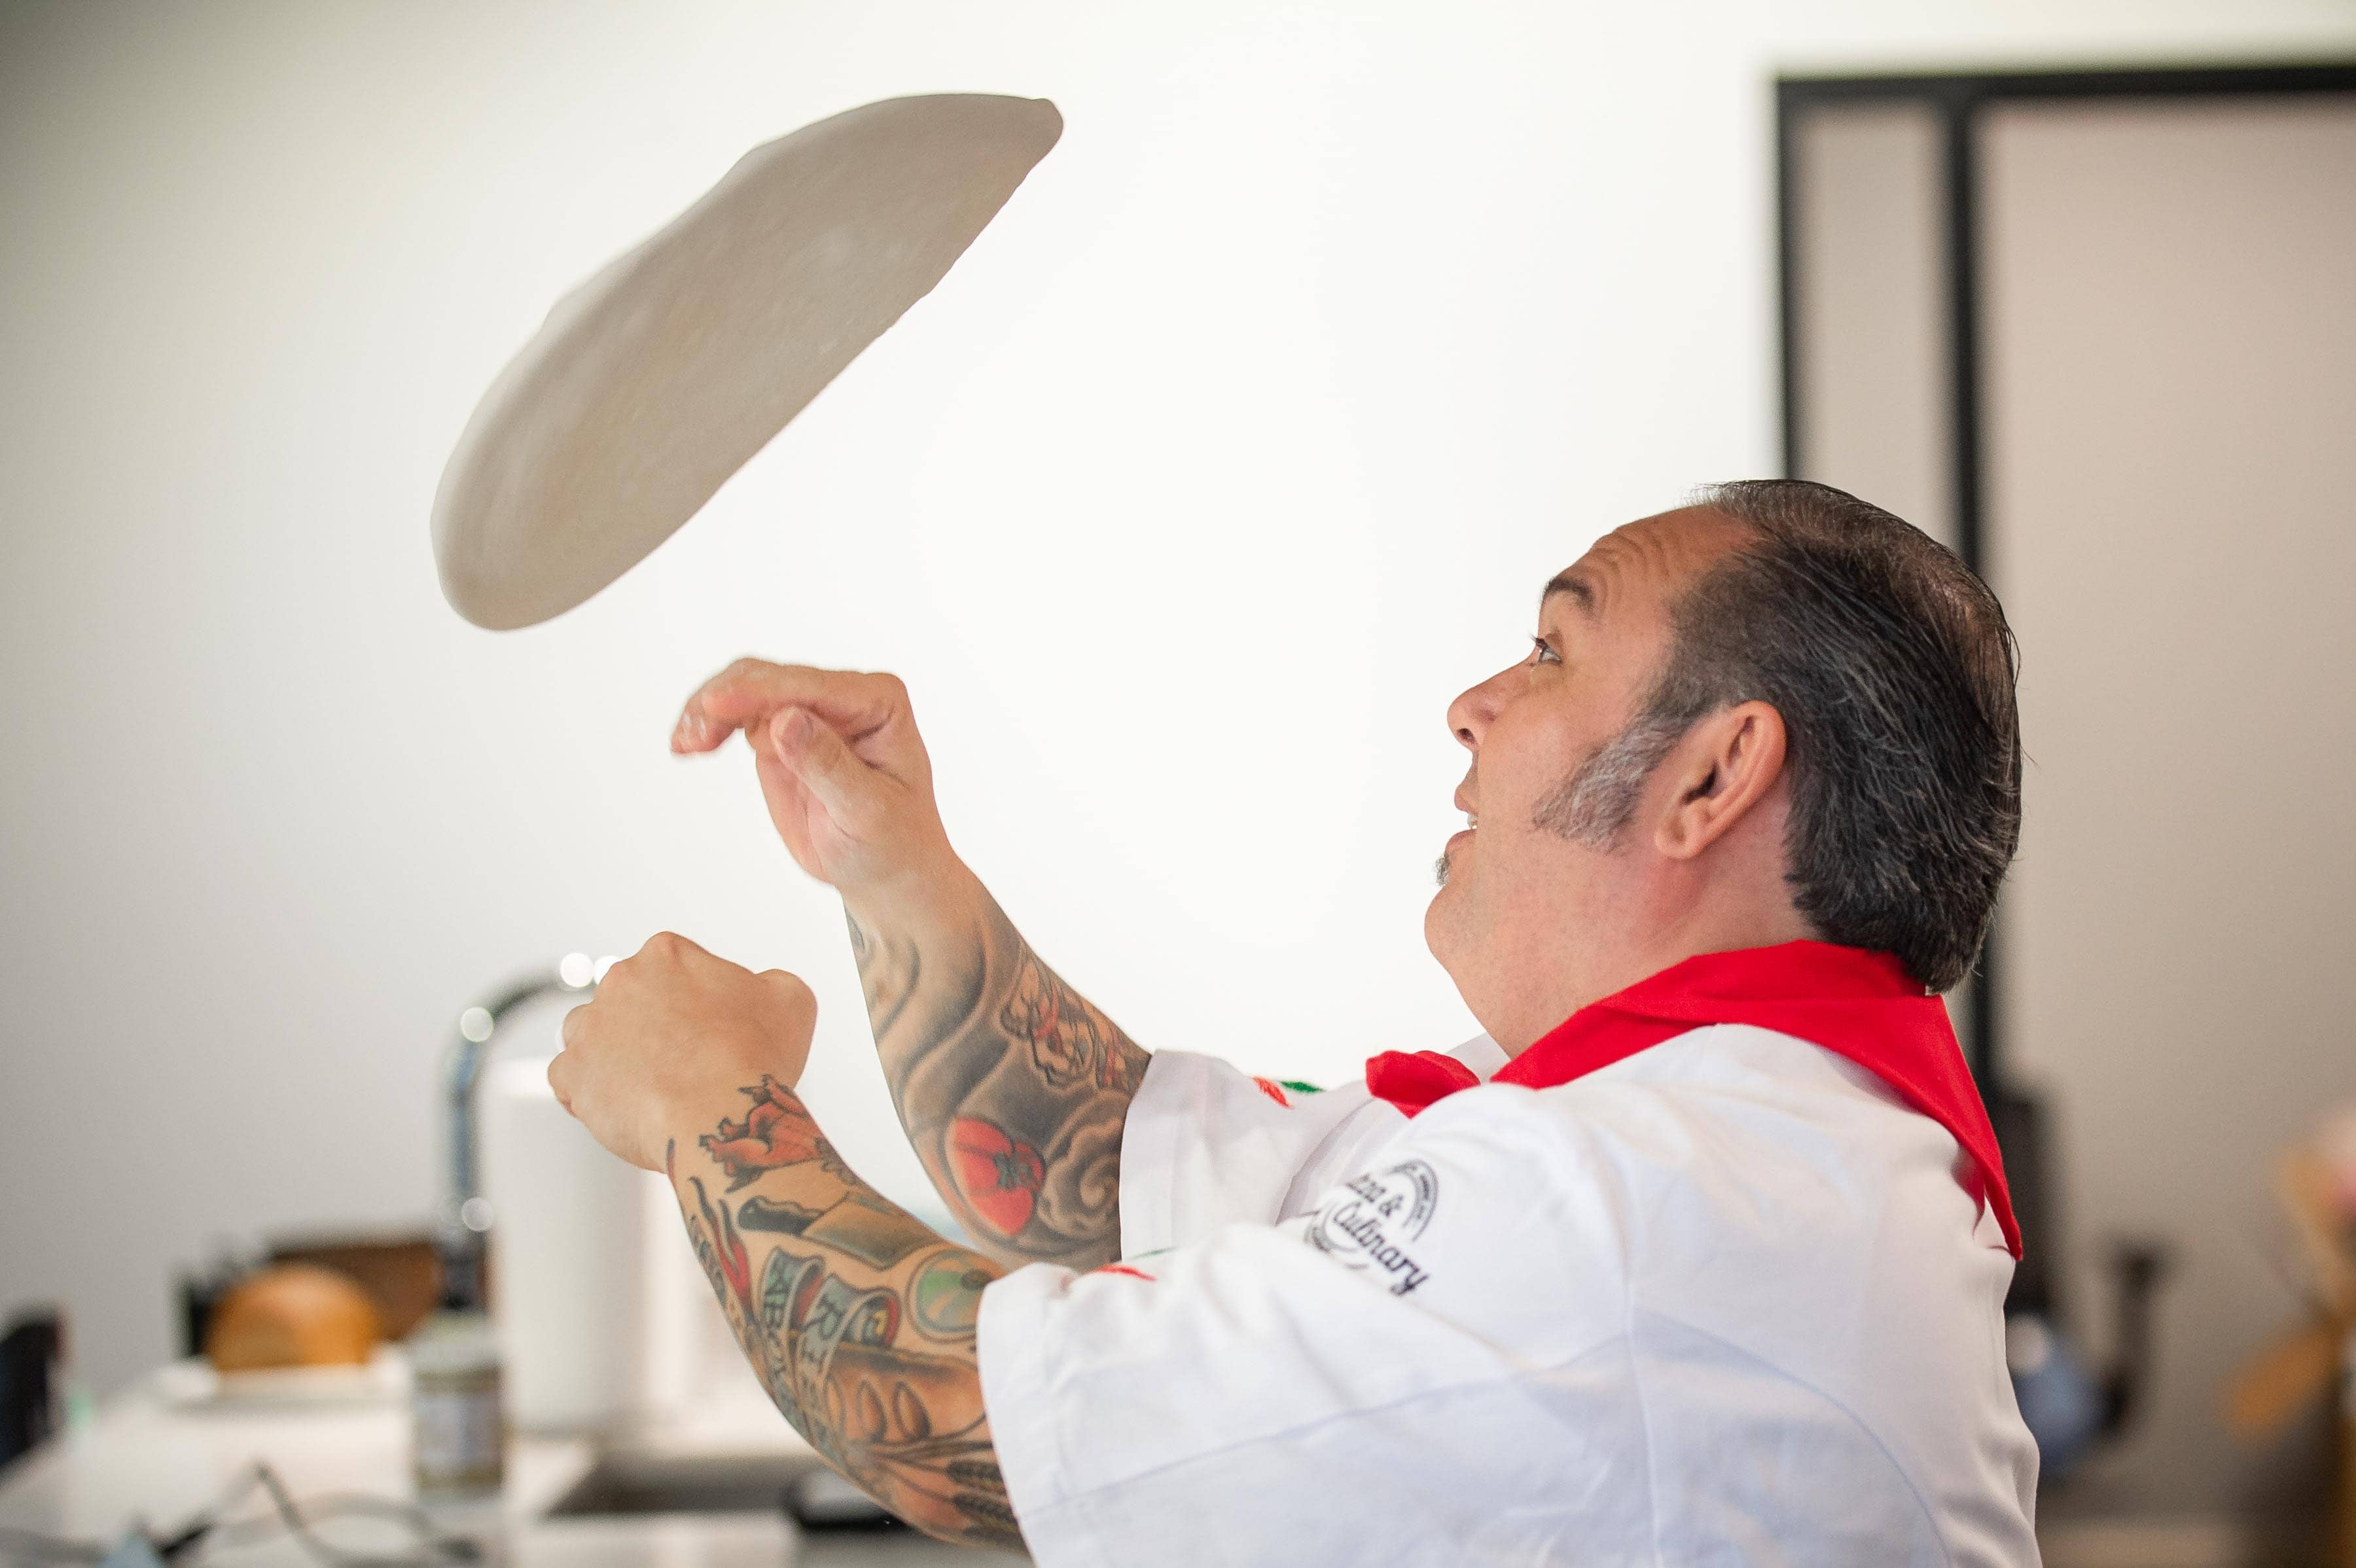 Chef Leo tossing pizza crust